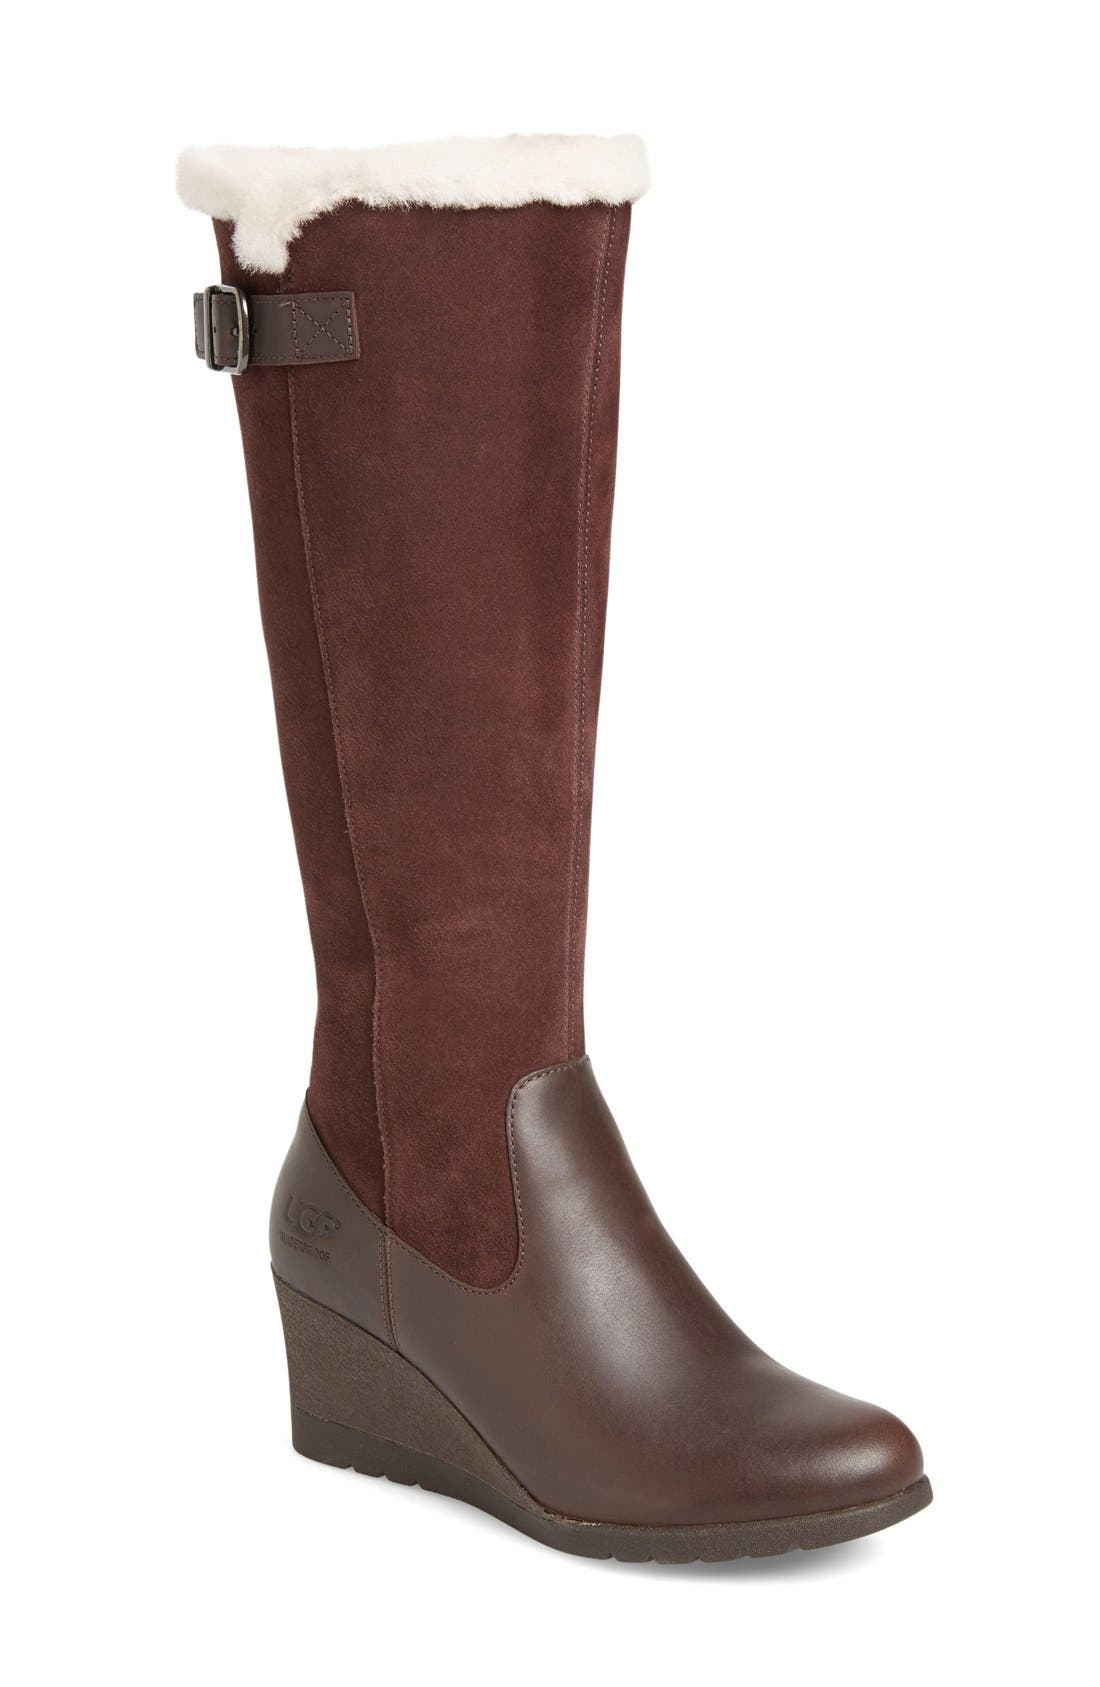 Main Image - UGG® Mischa Waterproof Wedge Boot (Women)